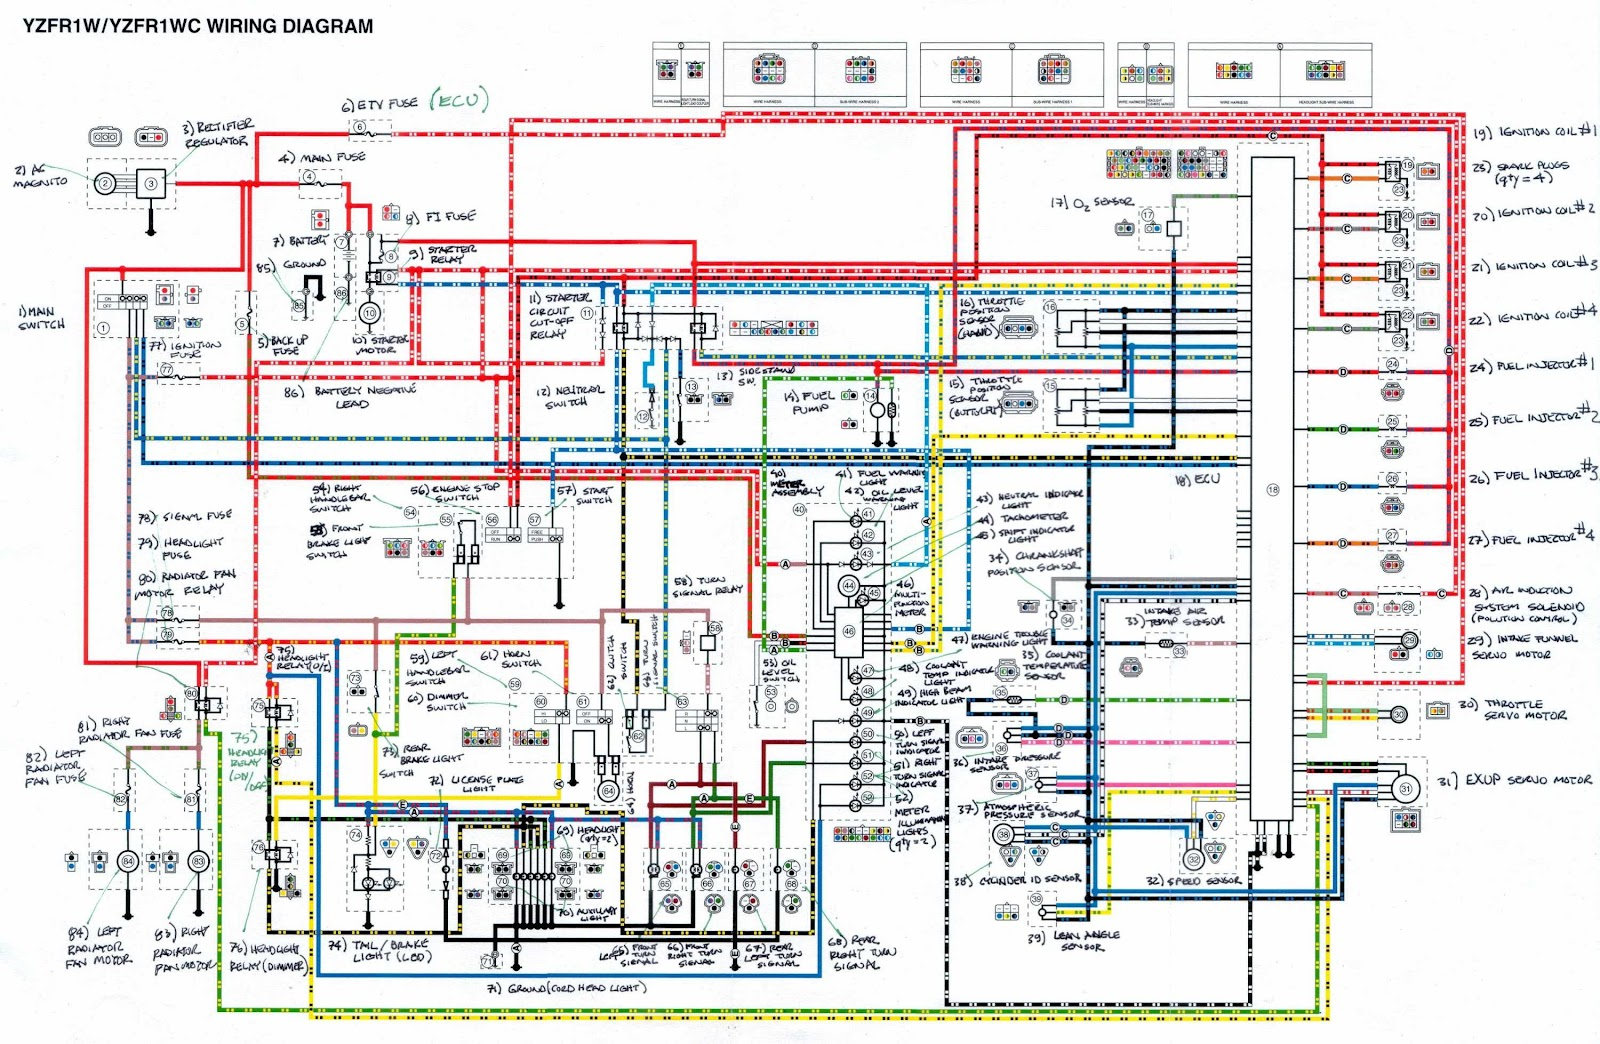 Yamaha+YZF R1+Motorcycle+Wiring+Diagram?resize=665%2C434 2003 yamaha r6 wiring diagram the best wiring diagram 2017 2001 yamaha warrior wiring diagram at suagrazia.org